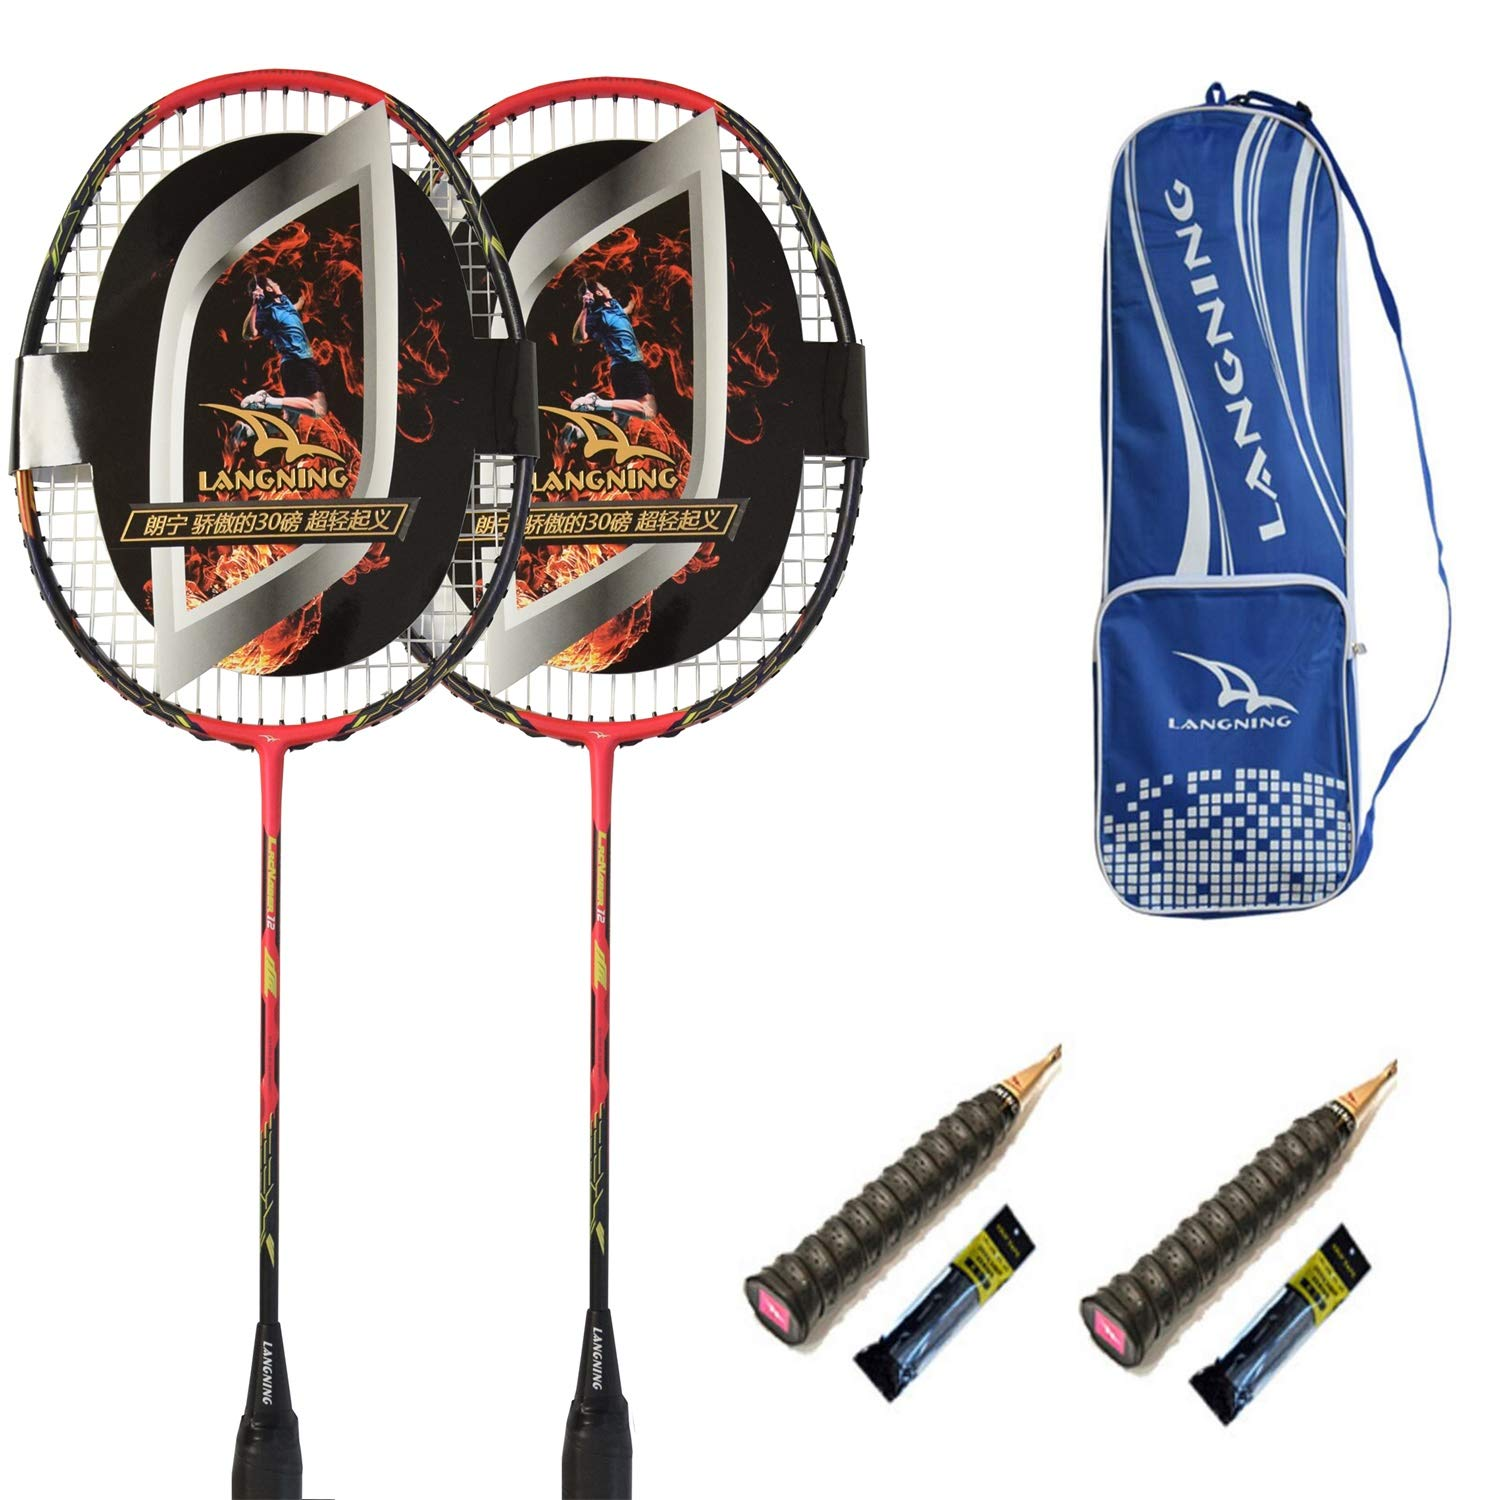 (red) - LANGNING Badminton Racquet Light 2 Rackets Set from Carbon Fibre Professional & Beginner Players Shuttle Bat Carrying Bag Included B075YXWT7C